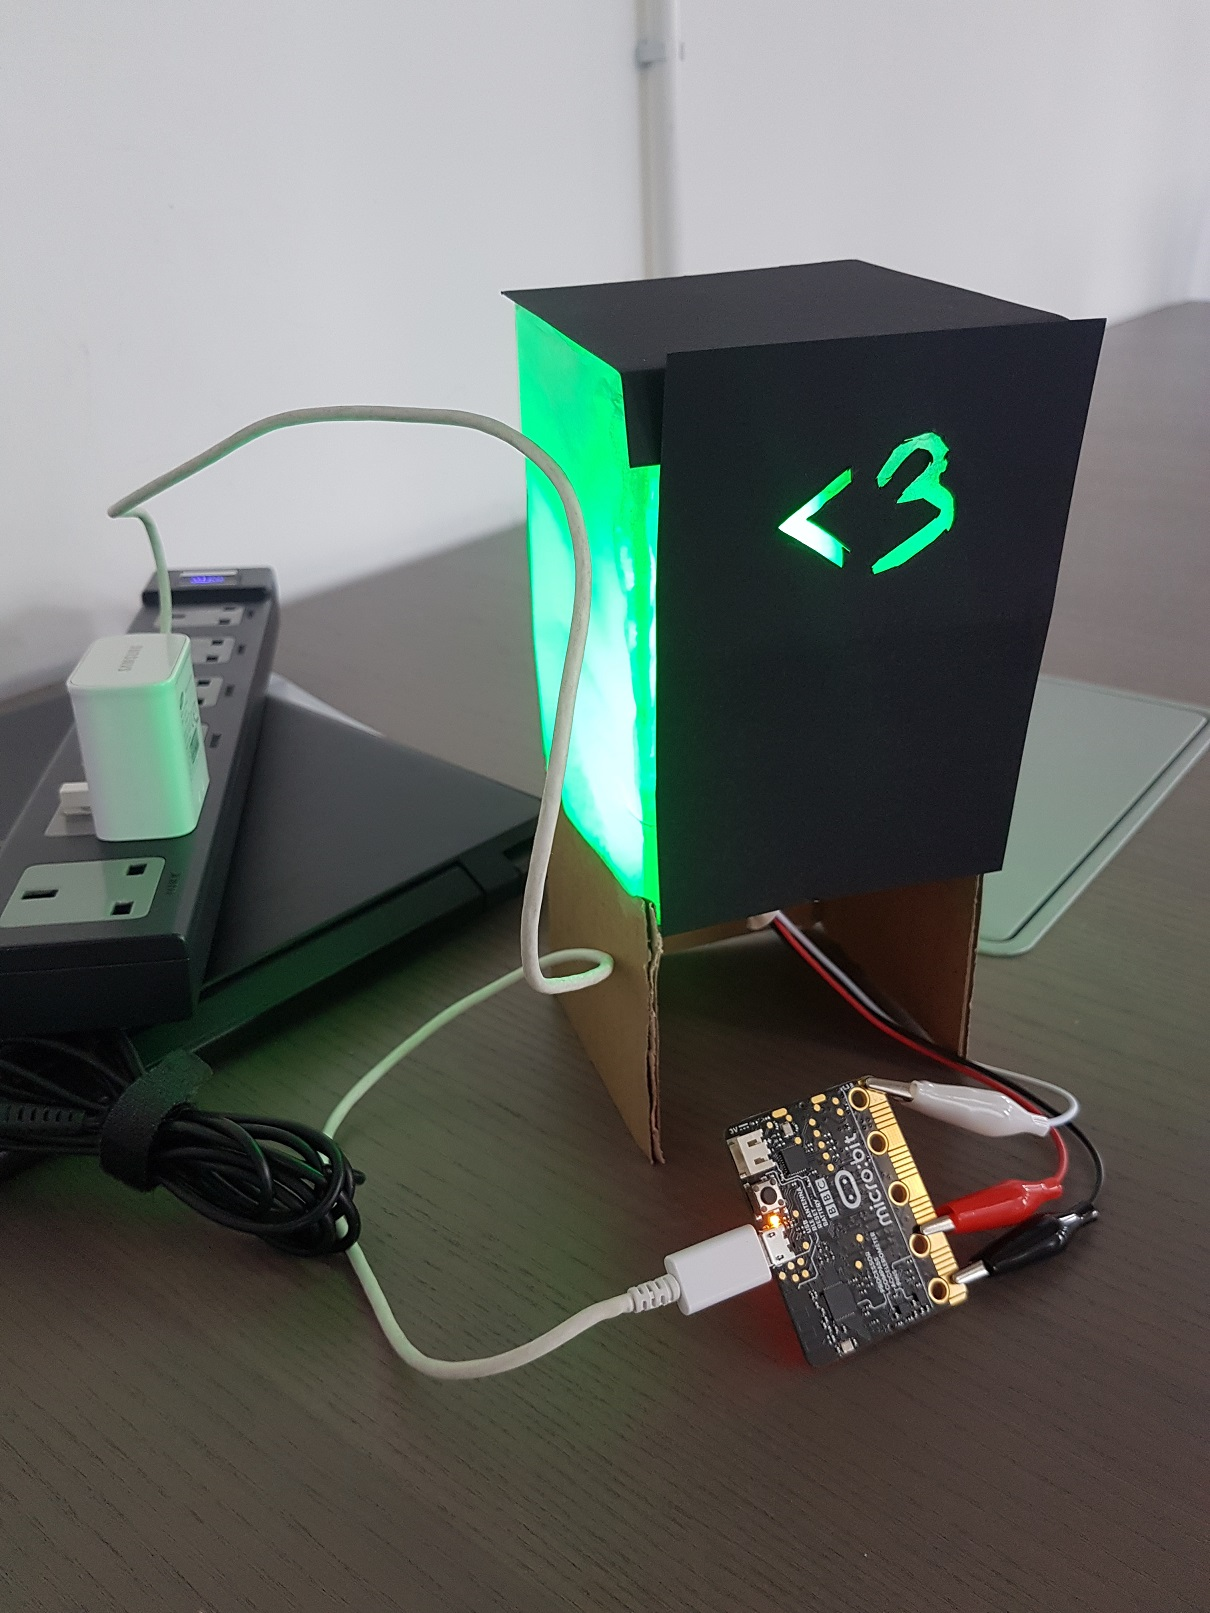 Prototype of Bedside Table Lamp